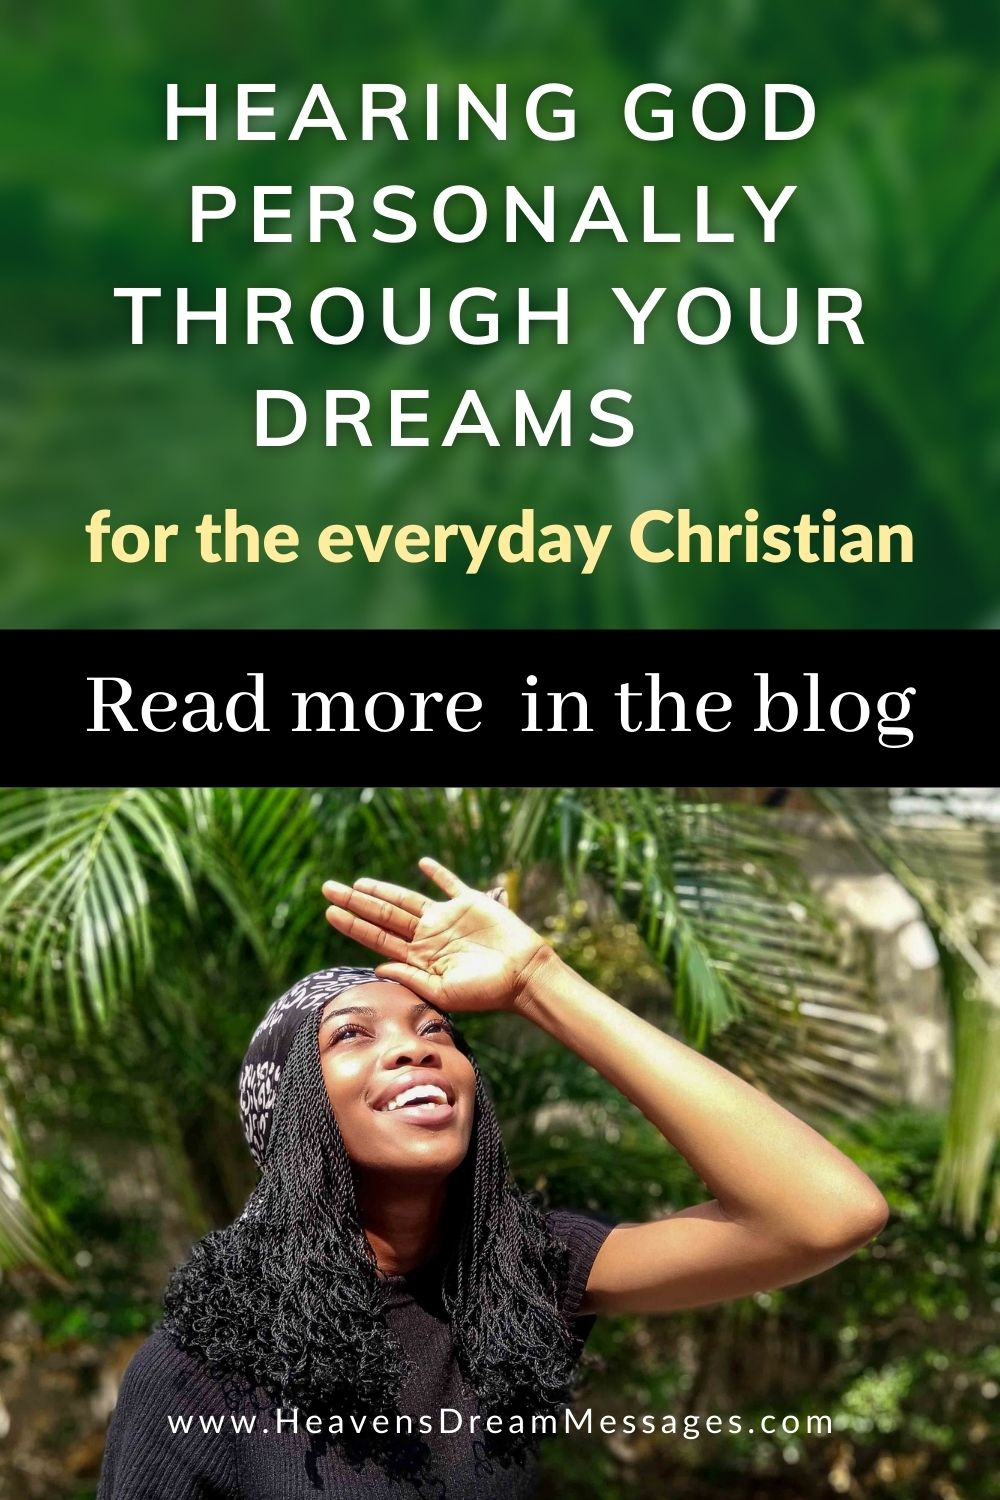 Picture of lady looking up with text - hearing God personally through your dreams - for the everyday Christian - read more in the blog